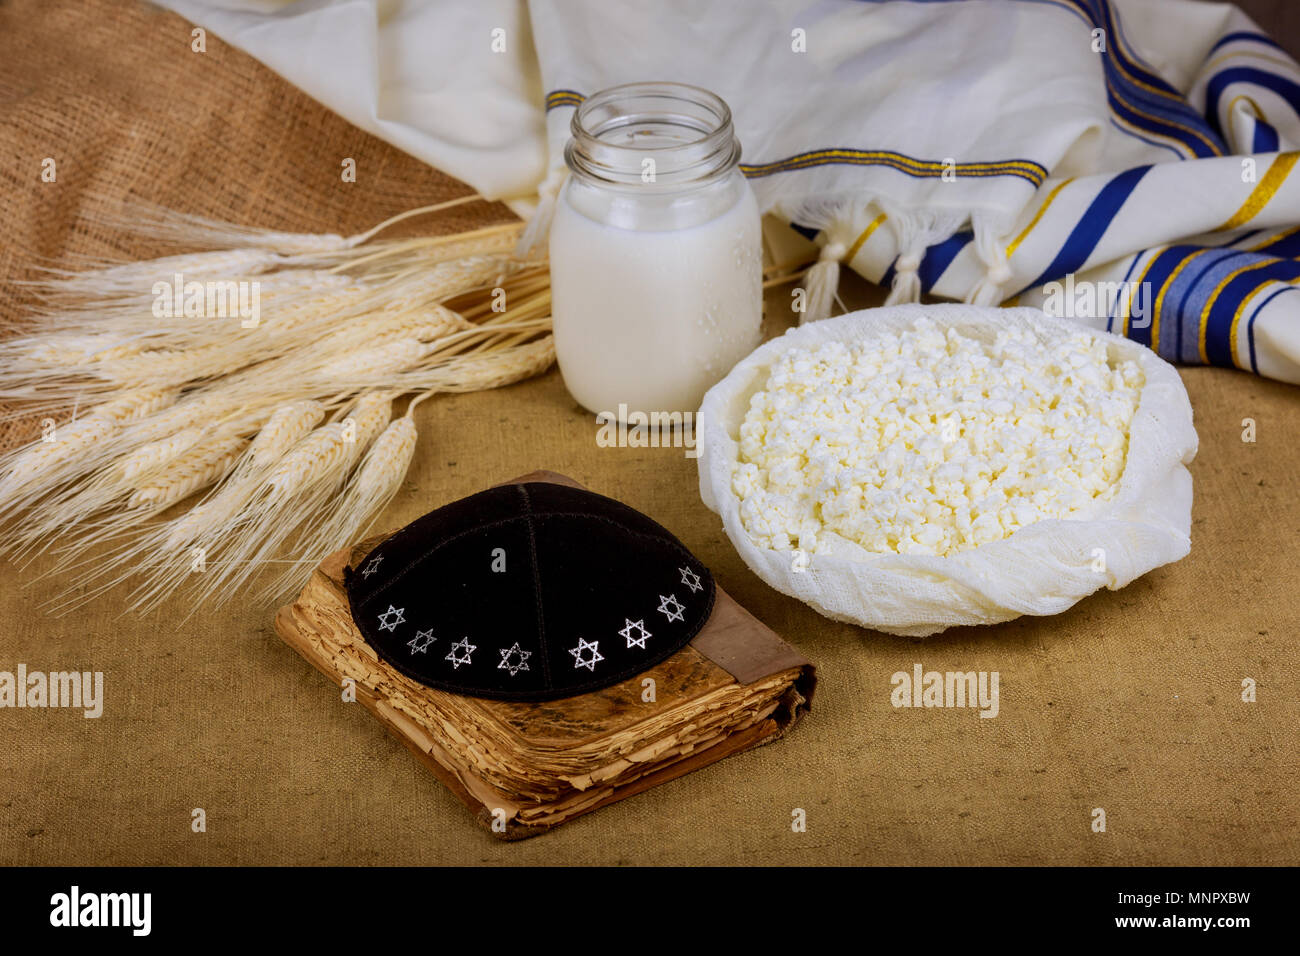 Dairy products on wheat field table torah, Symbols of jewish holiday - Shavuot - Stock Image